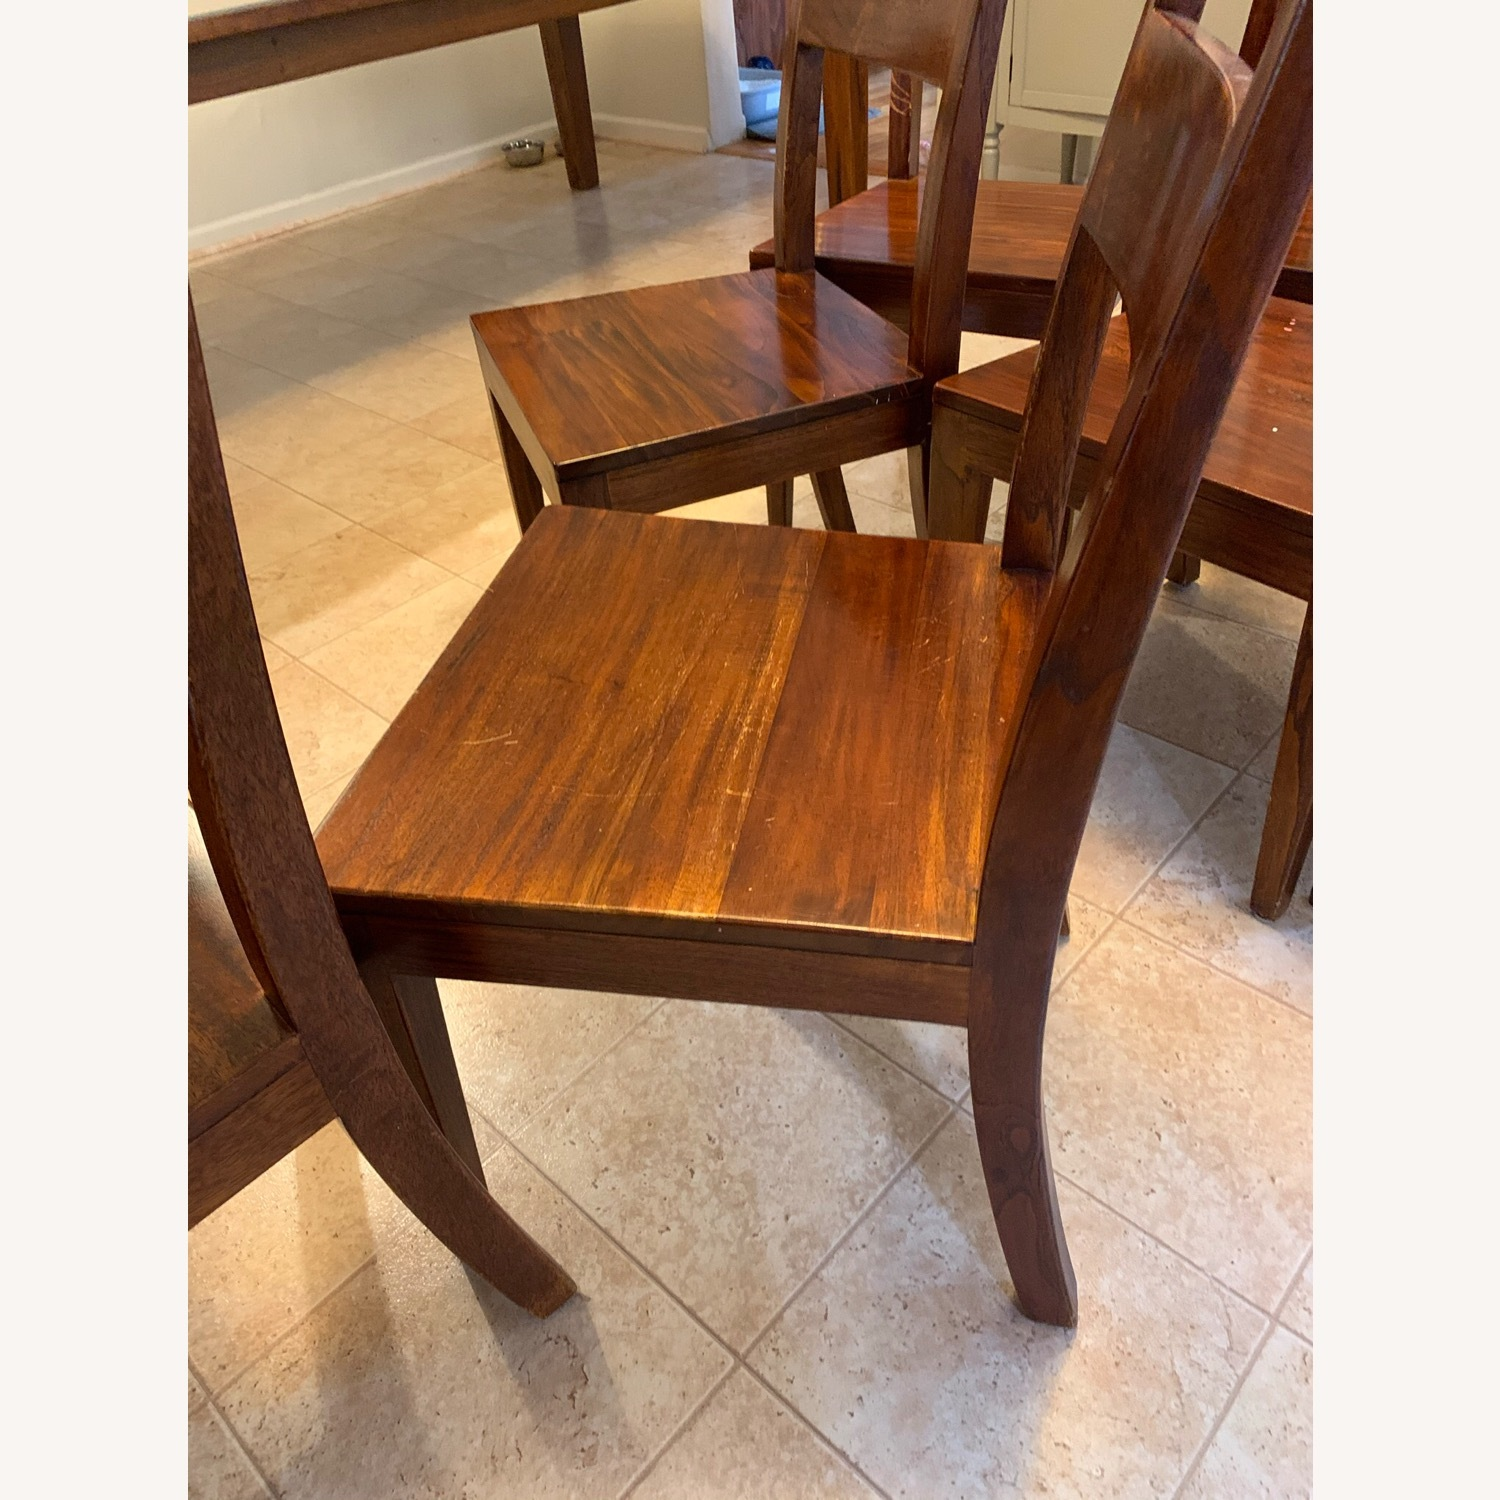 Crate and Barrel Basque Dining Table and 8 Chairs - image-5